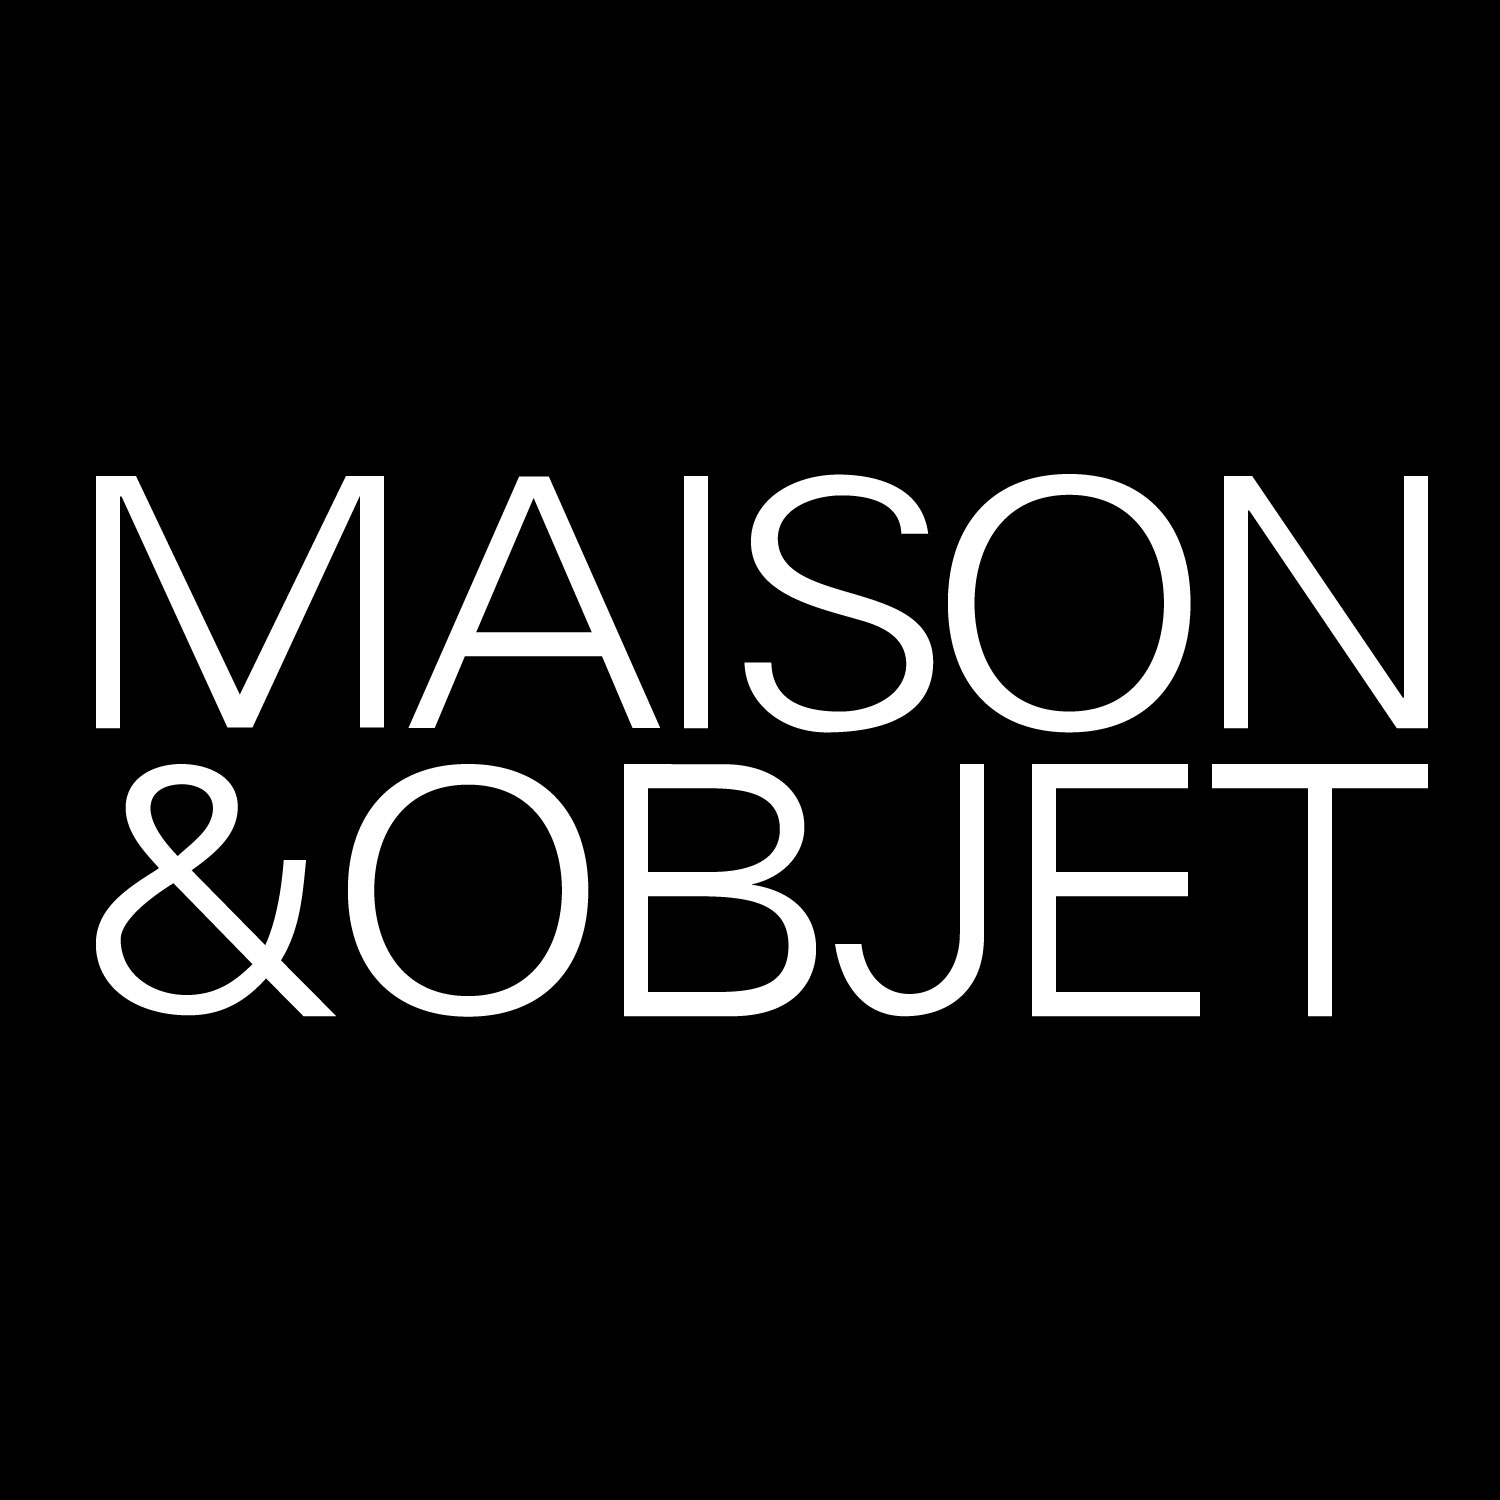 Maison & Objet - Facilities, site du Facility management